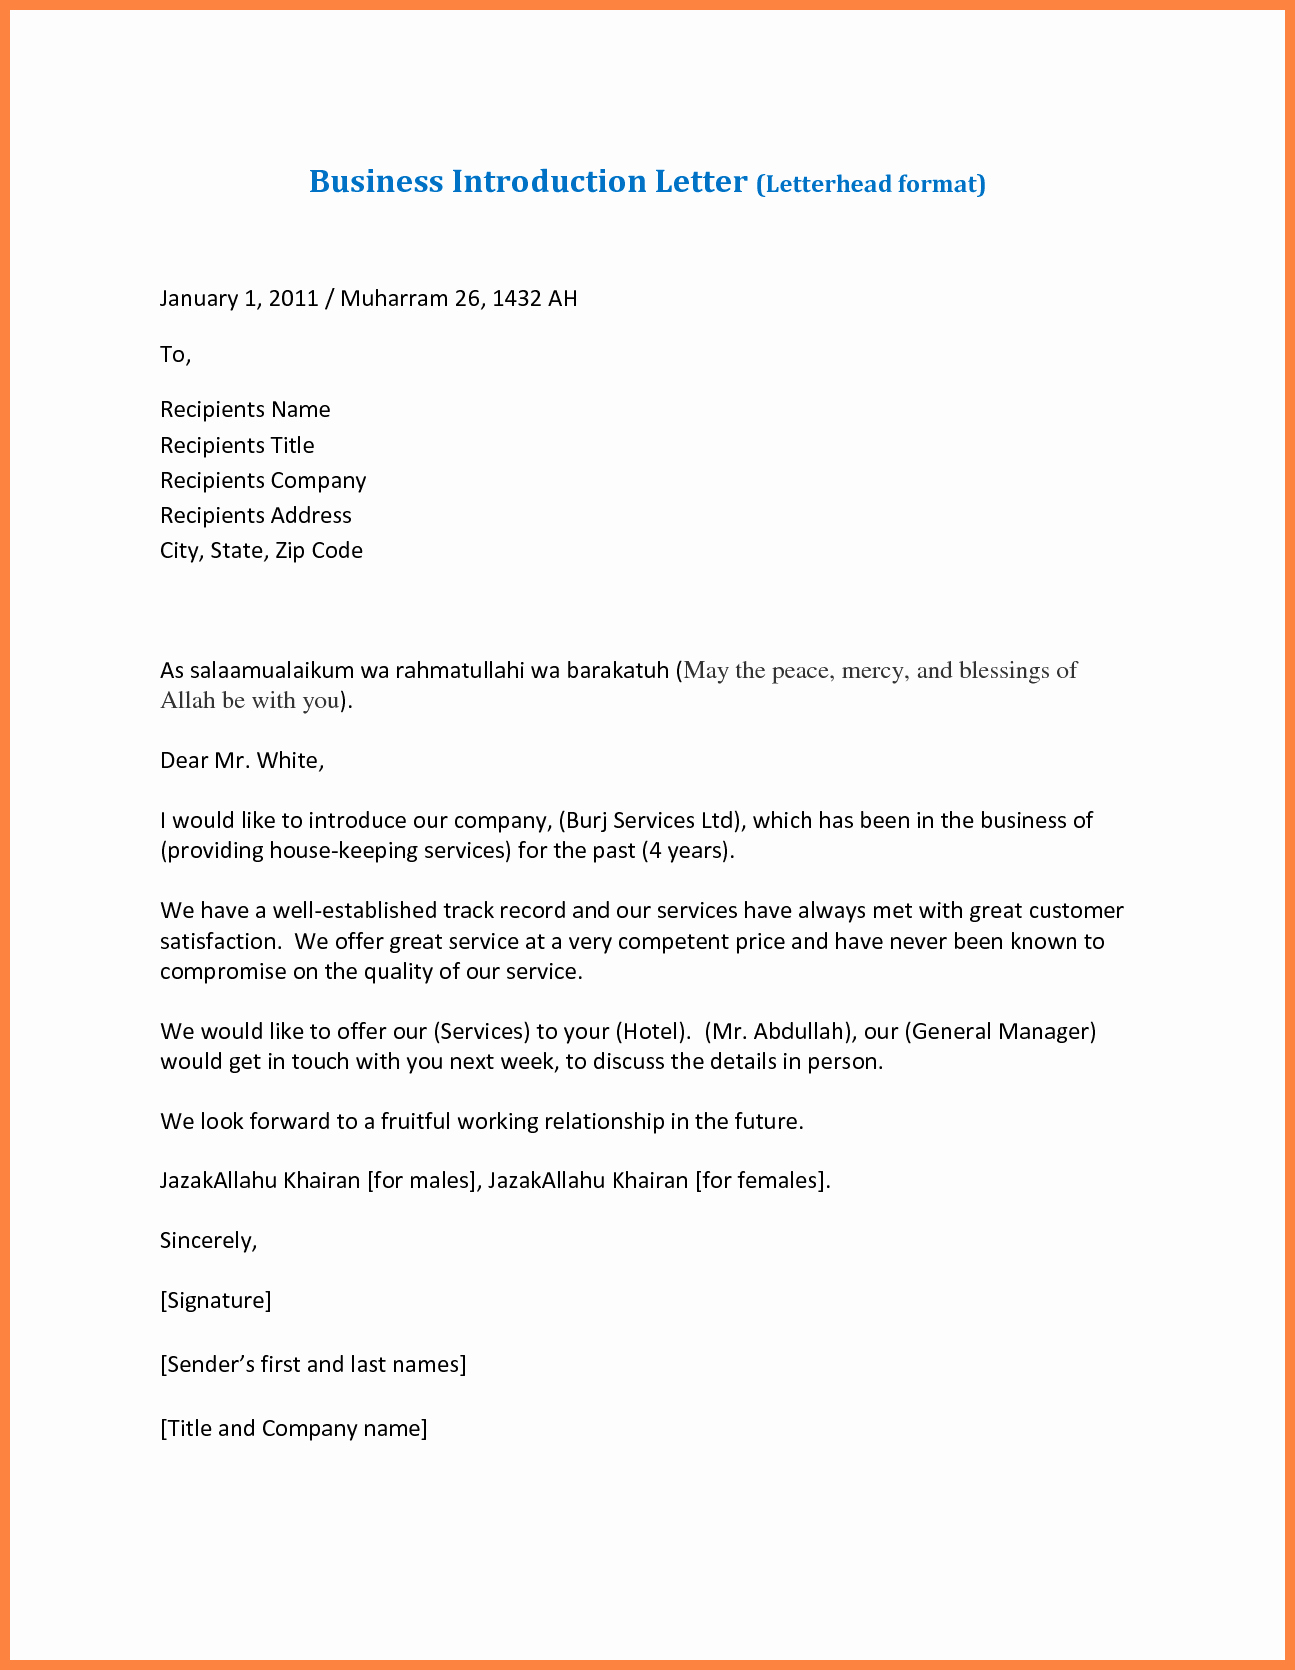 Business Introduction Letter Template Fresh 7 Sample Pany Introduction Letter for Business